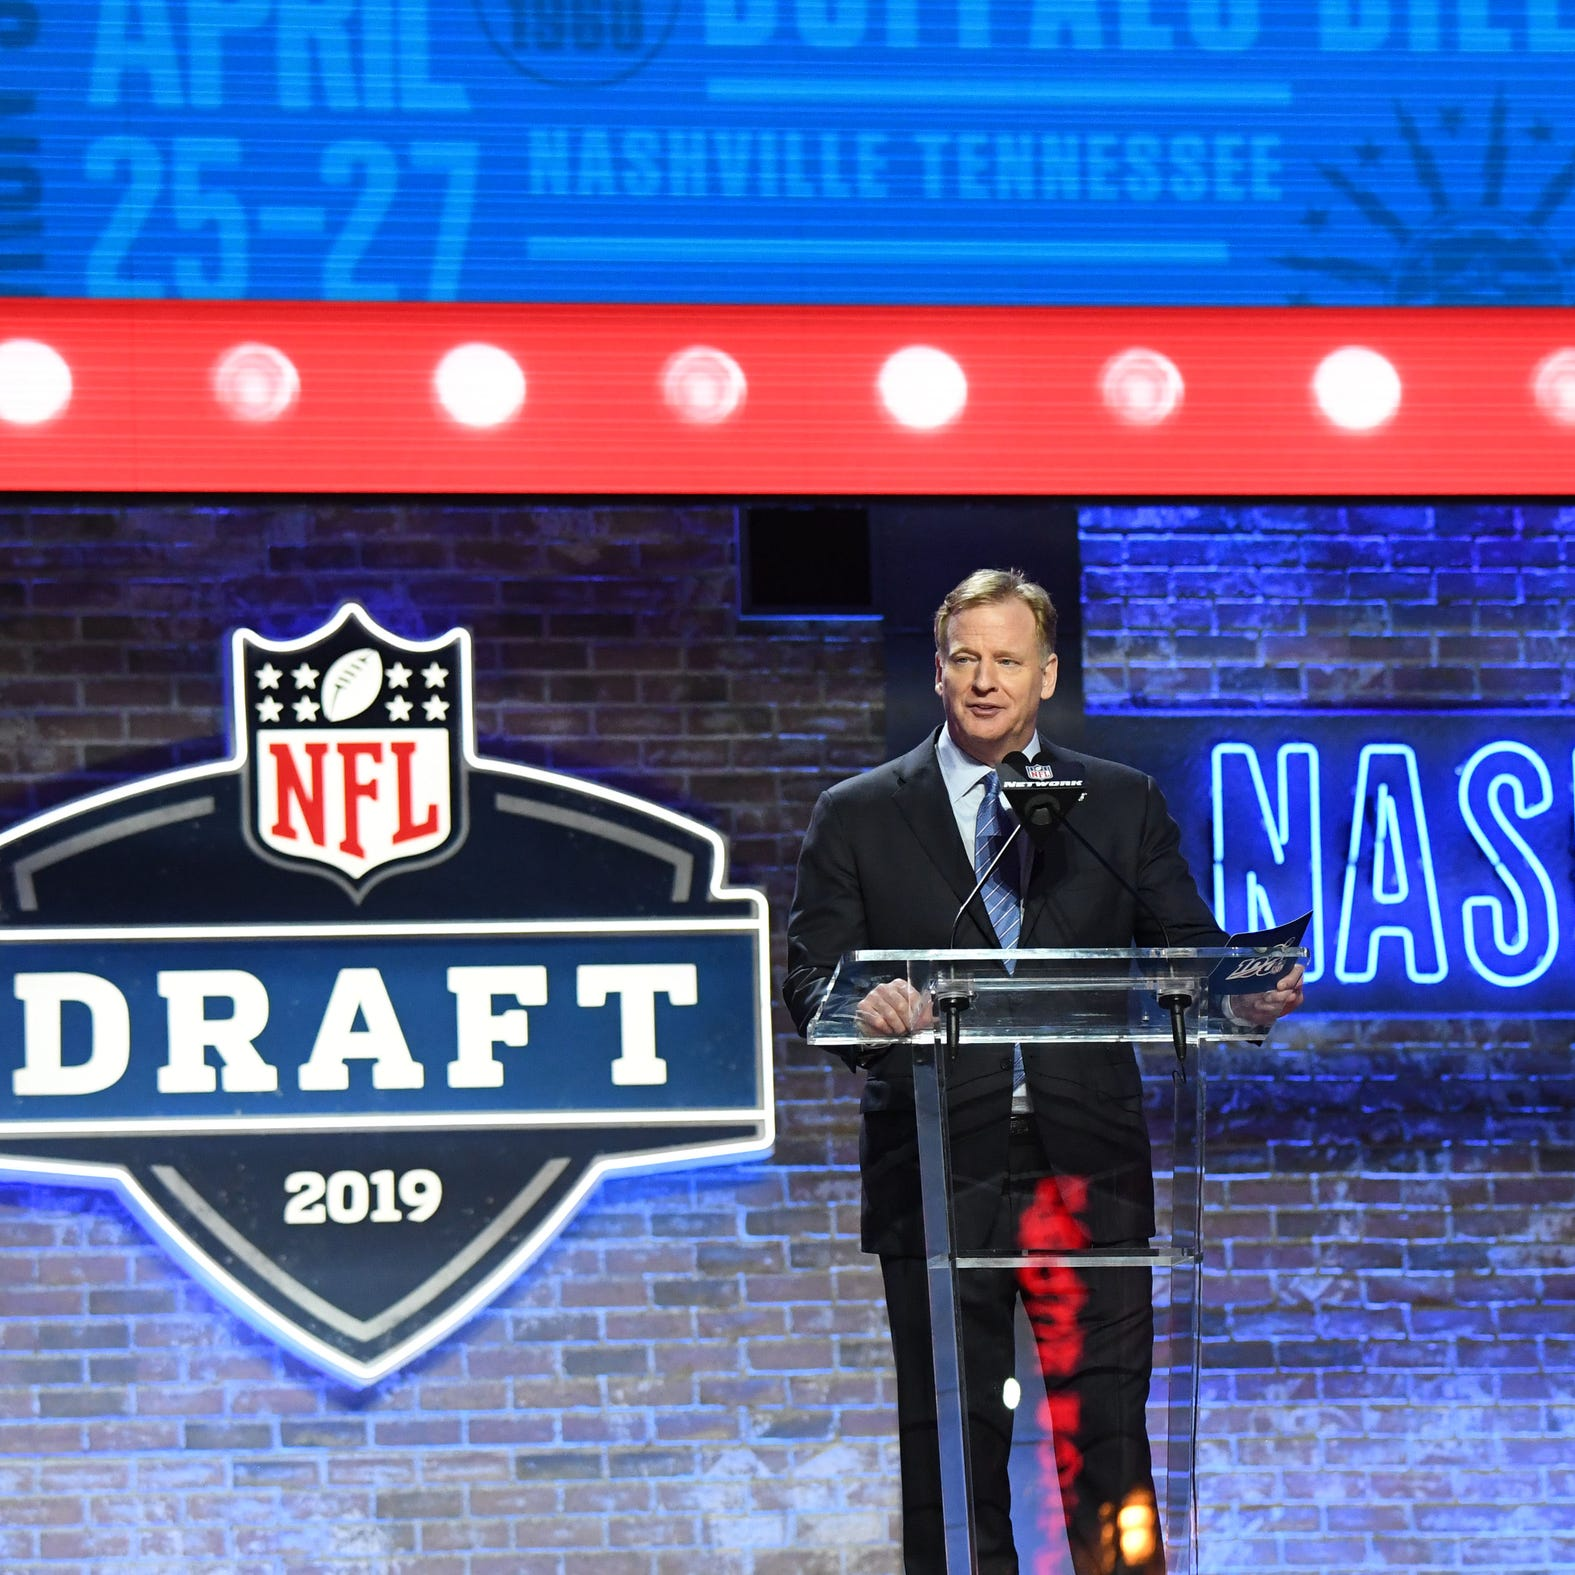 Live blog: NFL draft Rounds 2-3 tracking every pick; Lions have 2 picks